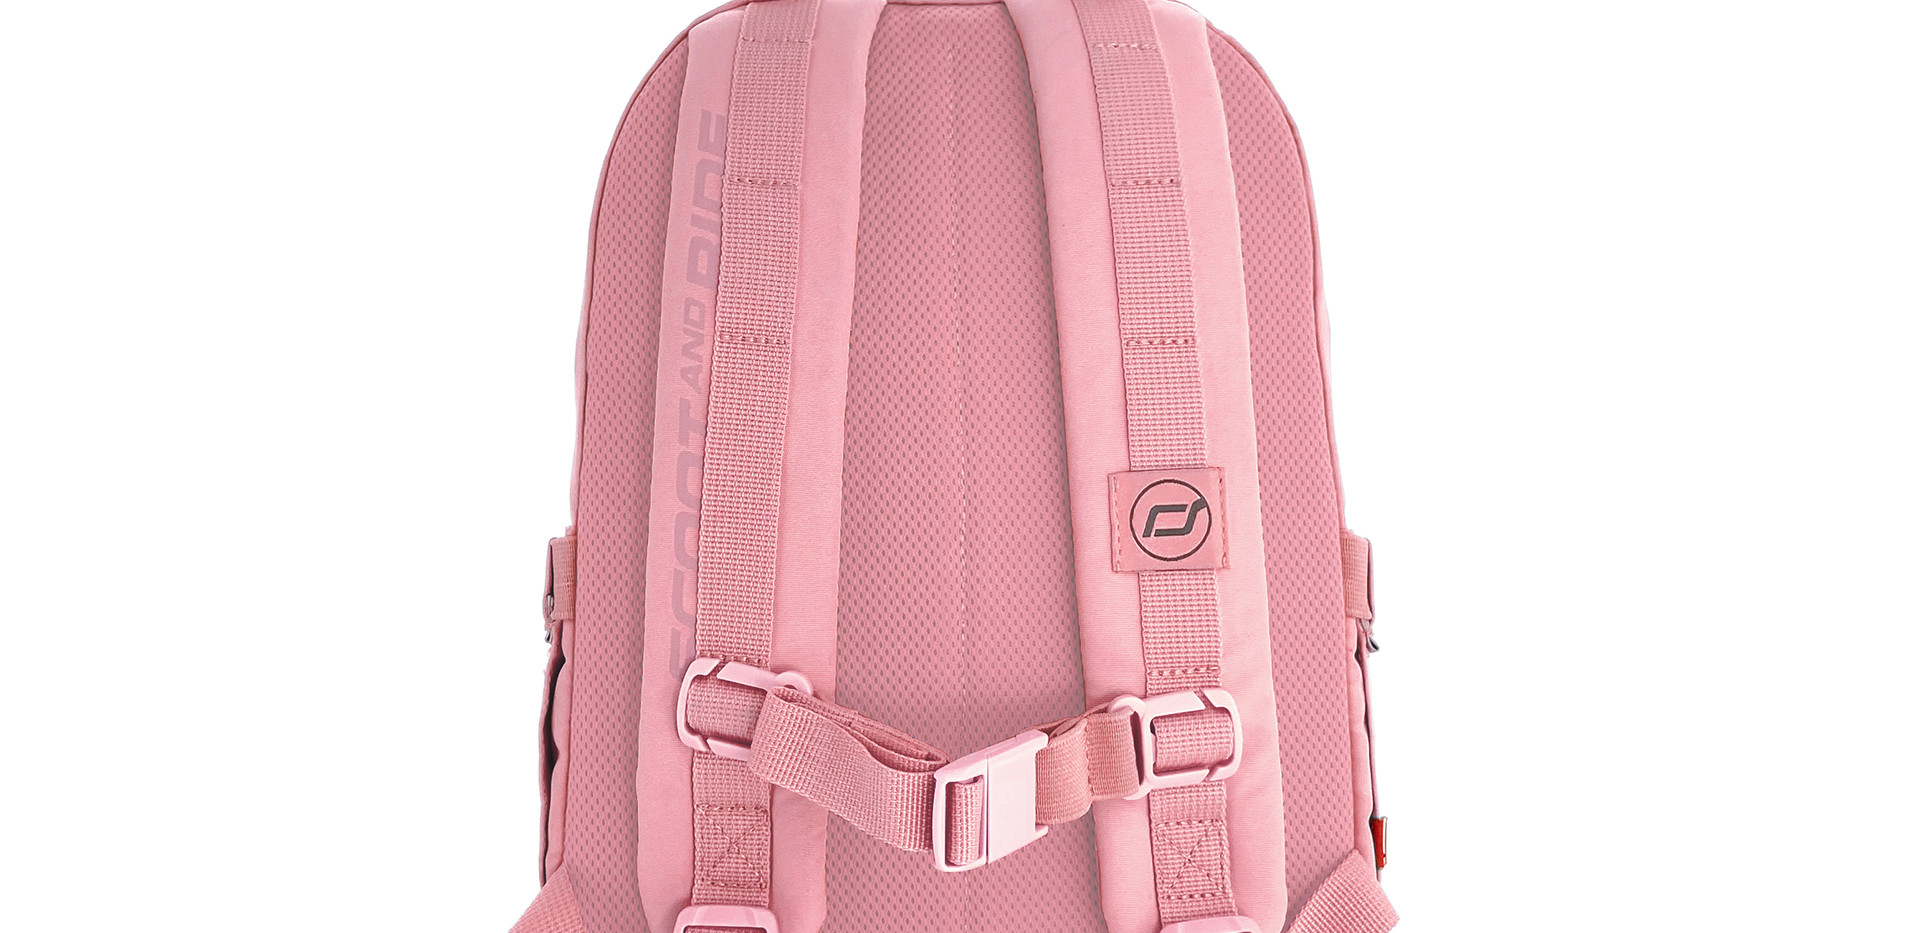 size_product_shoppicture_backpack_rose02